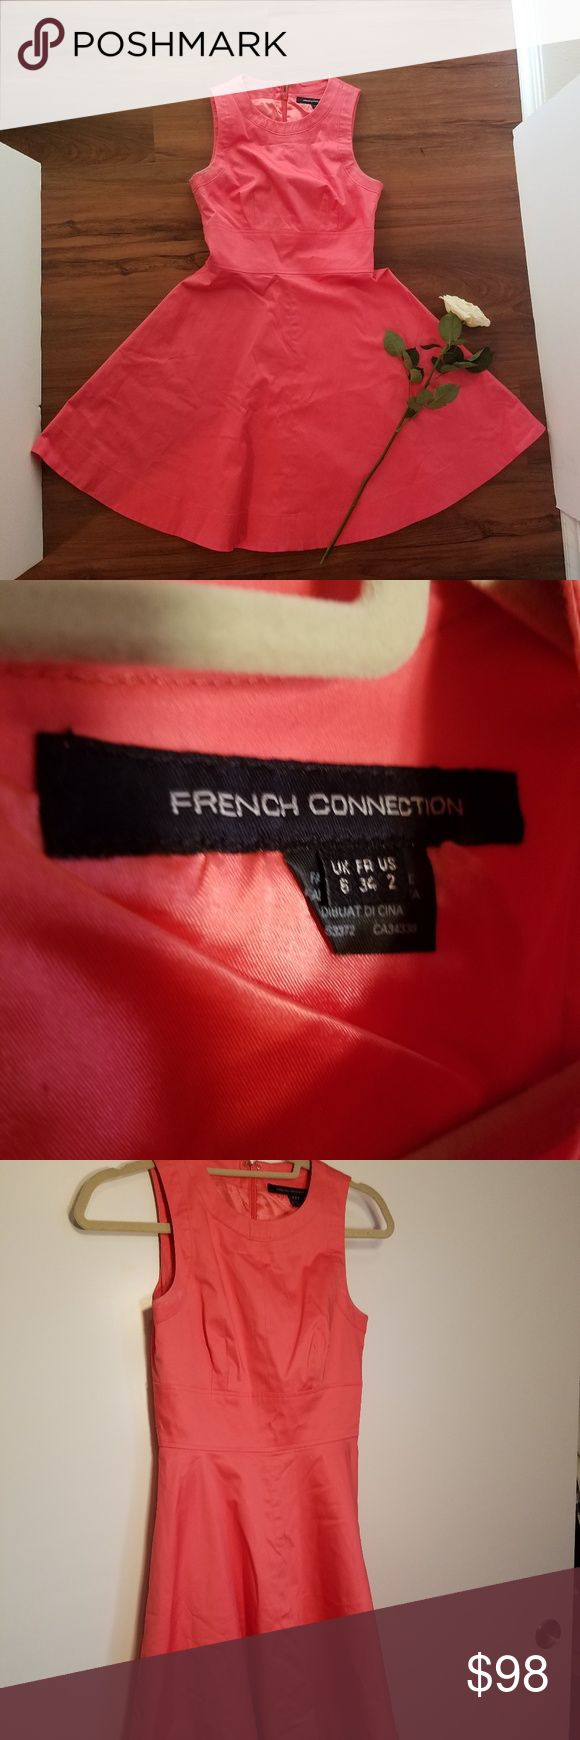 French Connection Pink Dress, Size 2